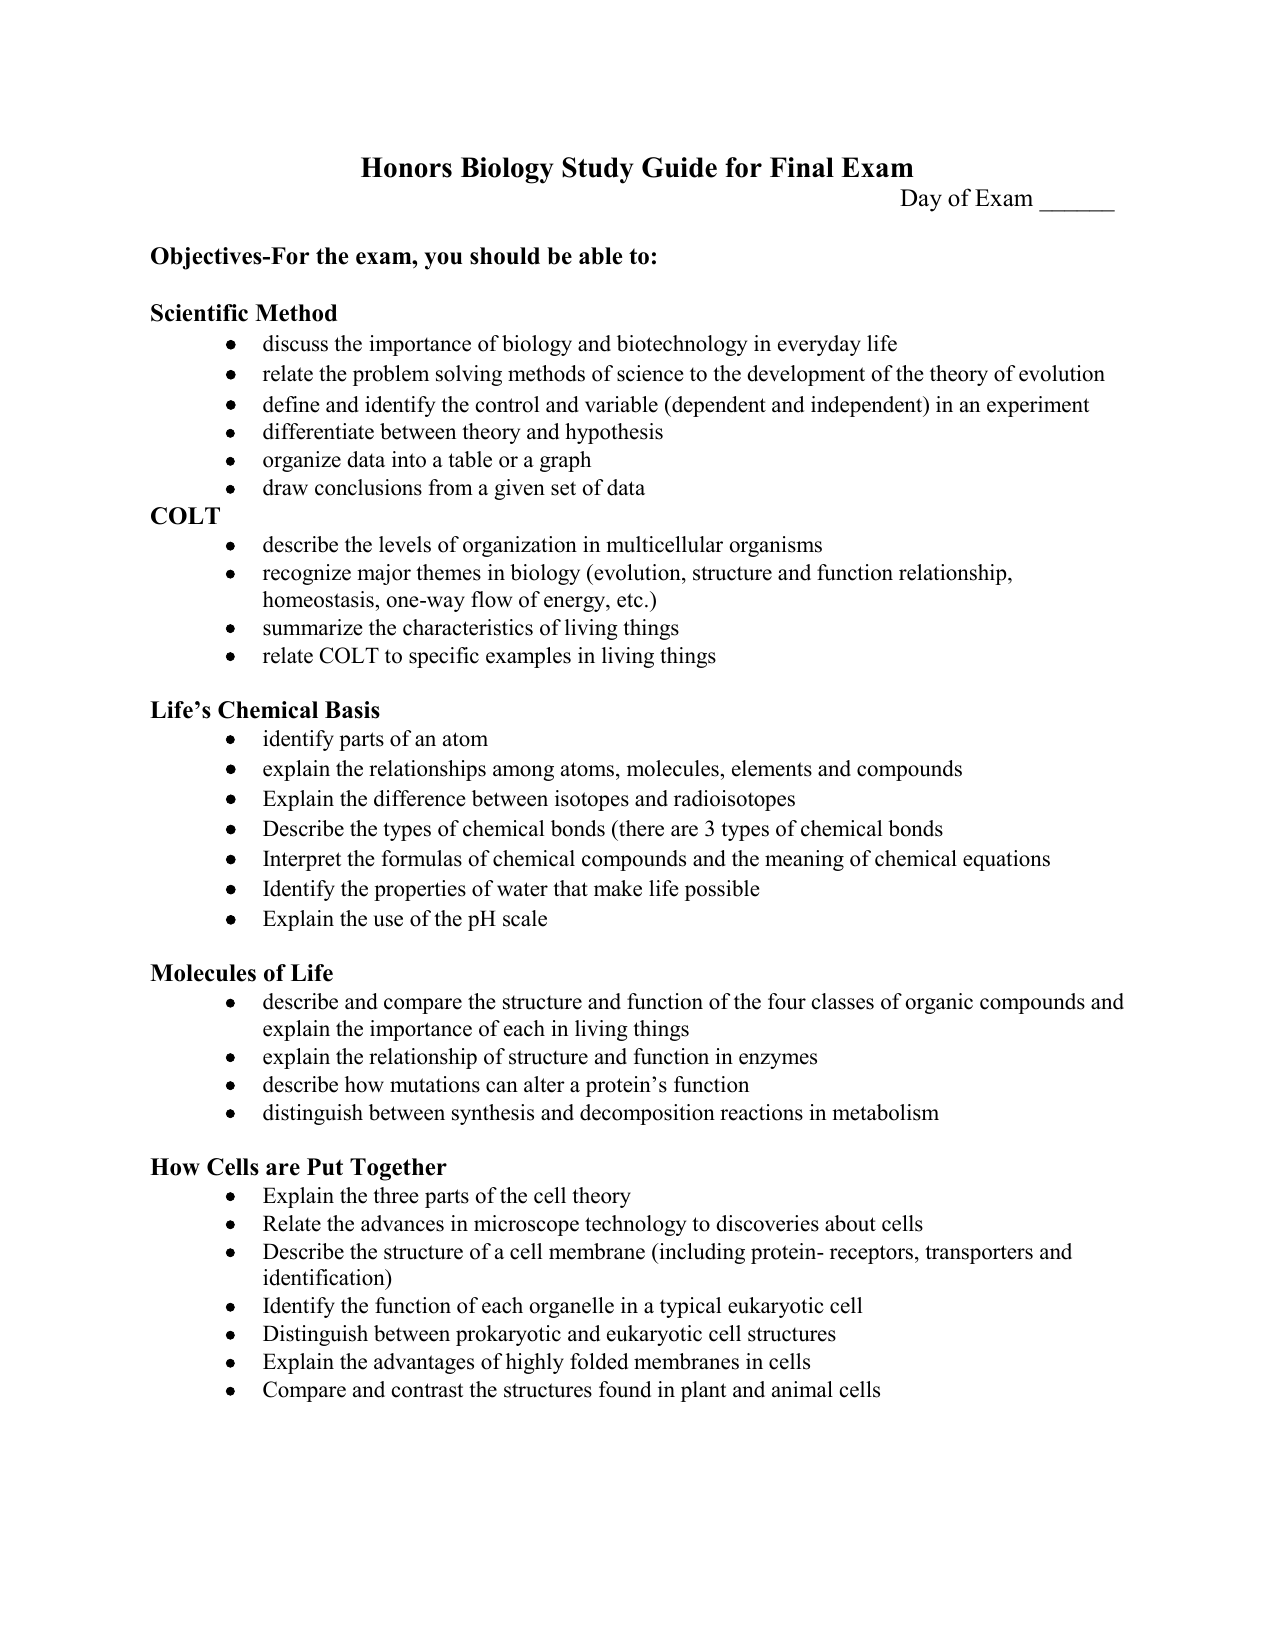 Honors Biology Study Guide for Final Exam